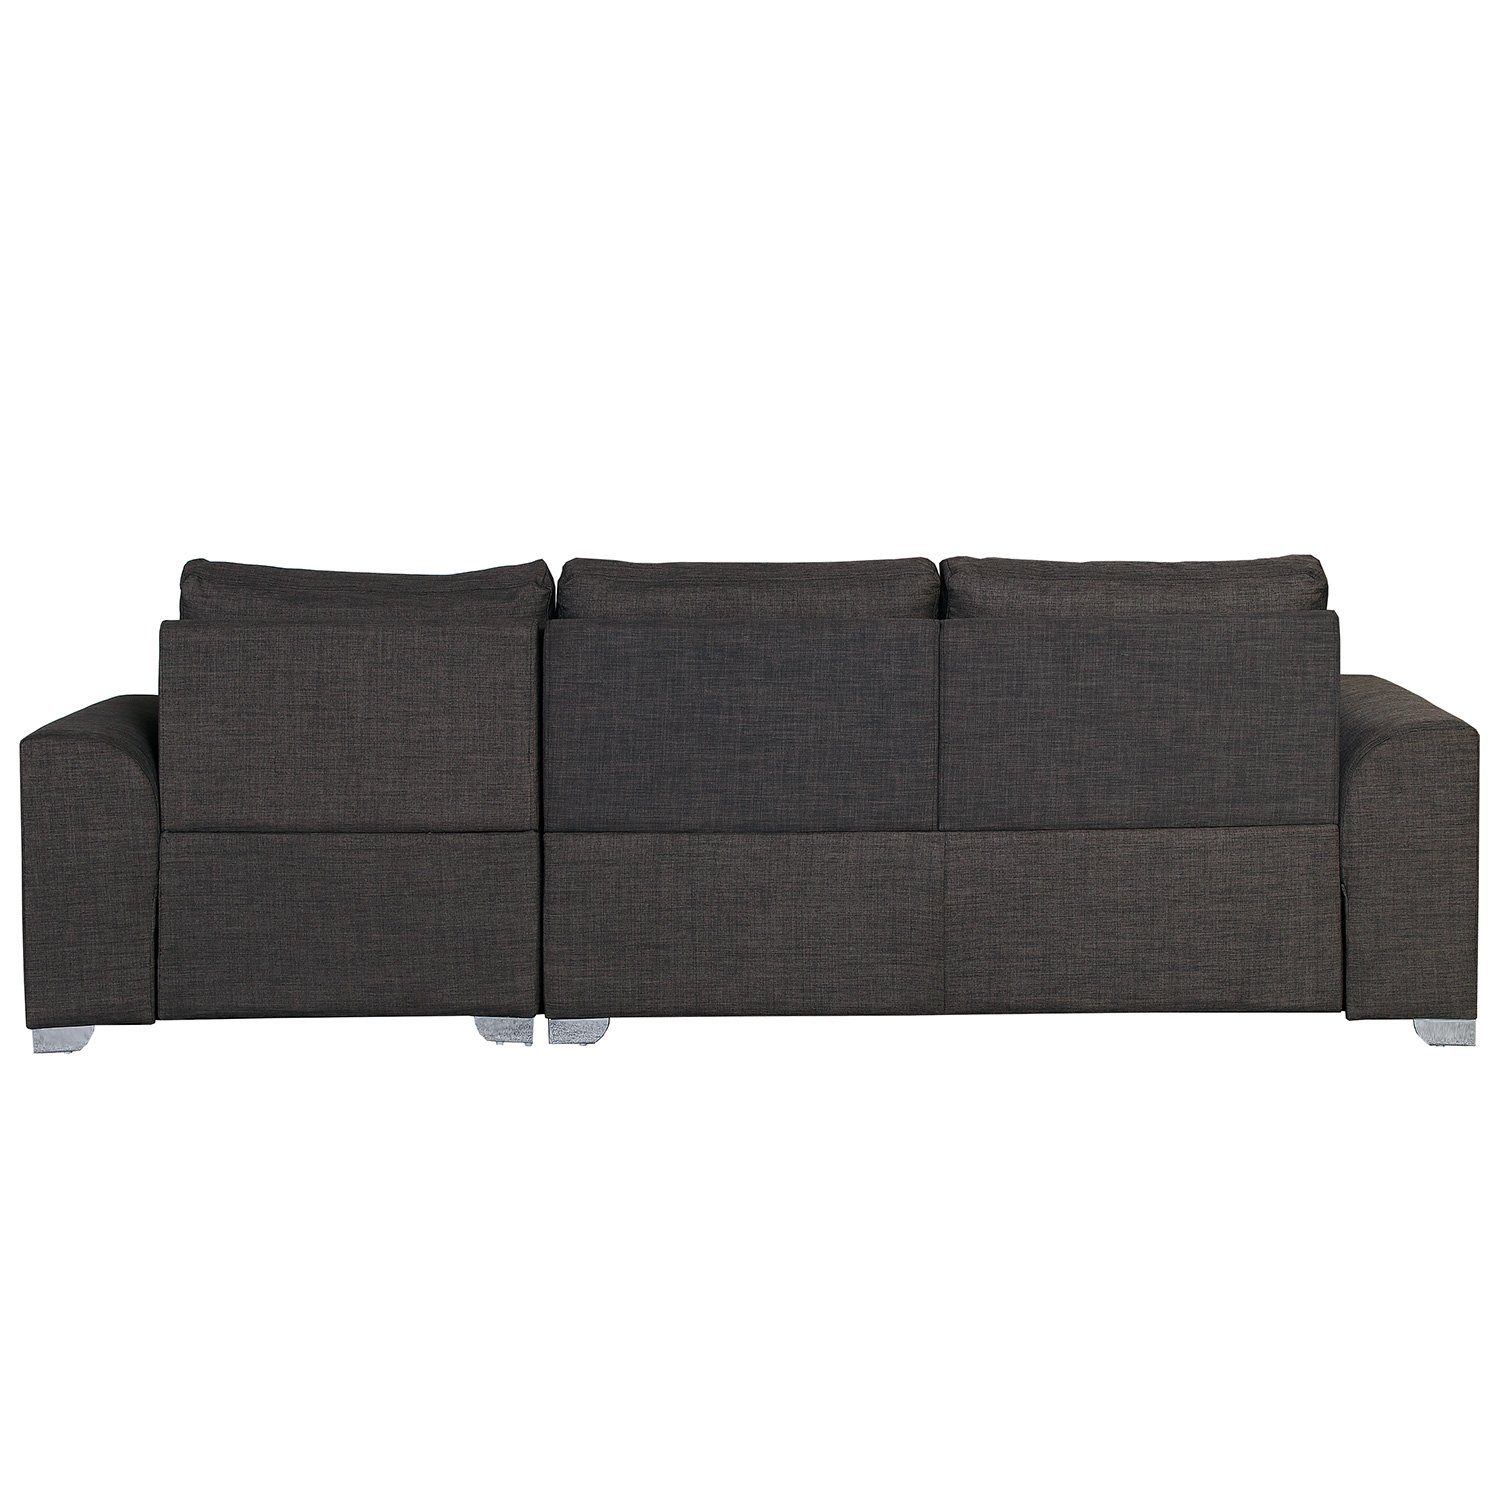 Amazon Merax Big 2 piece Sectional Sofa with Chaise Fabric